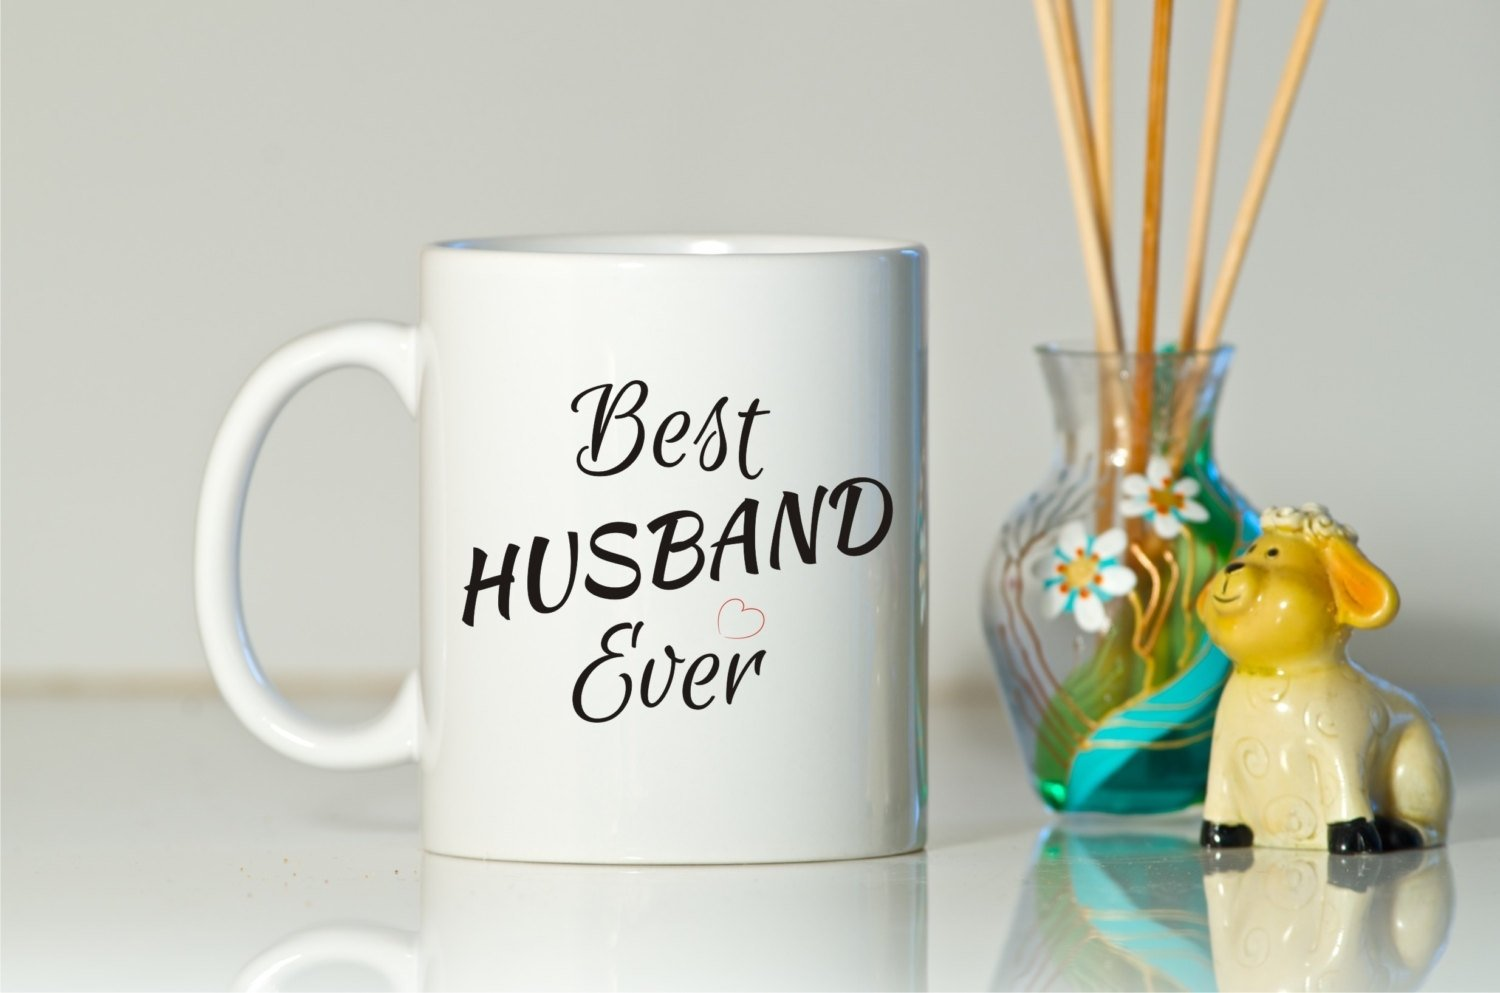 10 Lovely Cheap Birthday Ideas For Husband first birthday gift for husband wife after wedding marriage anniversary 4 2020